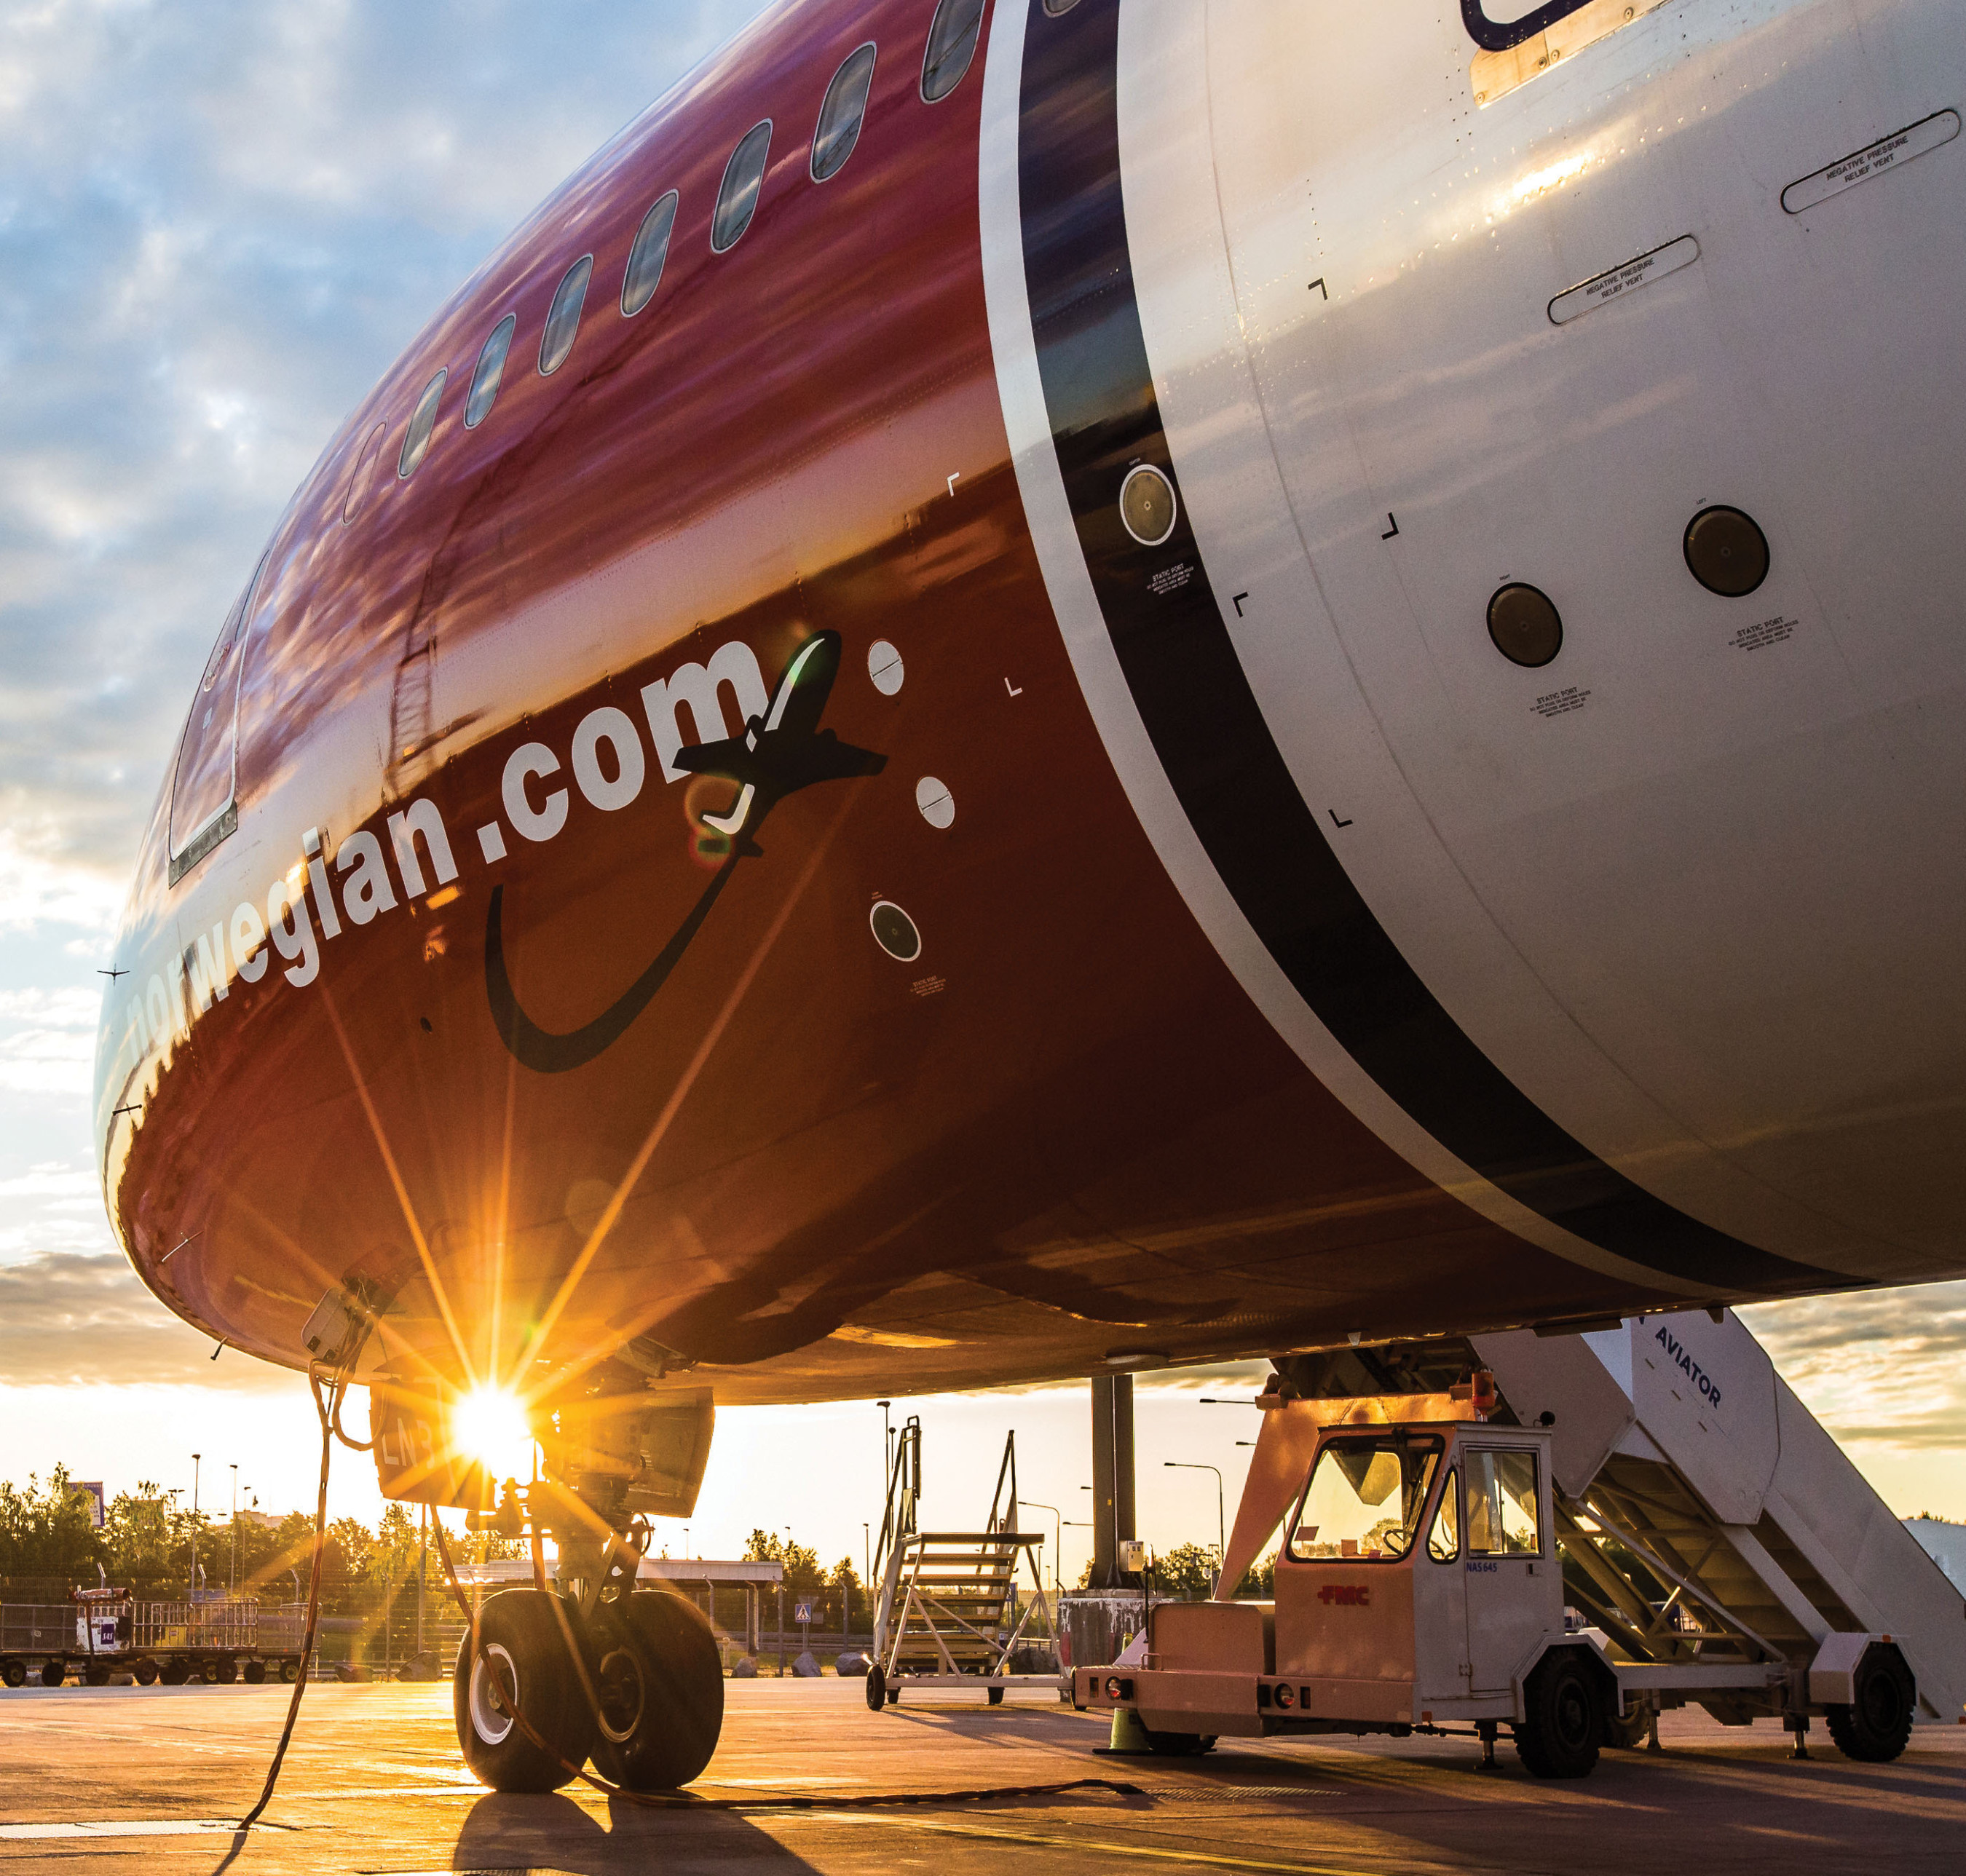 Norwegian-Airlines-Bank-On-It-London-Nil-Do-Simon-Fort-Lauderdale-Venice-Magazine